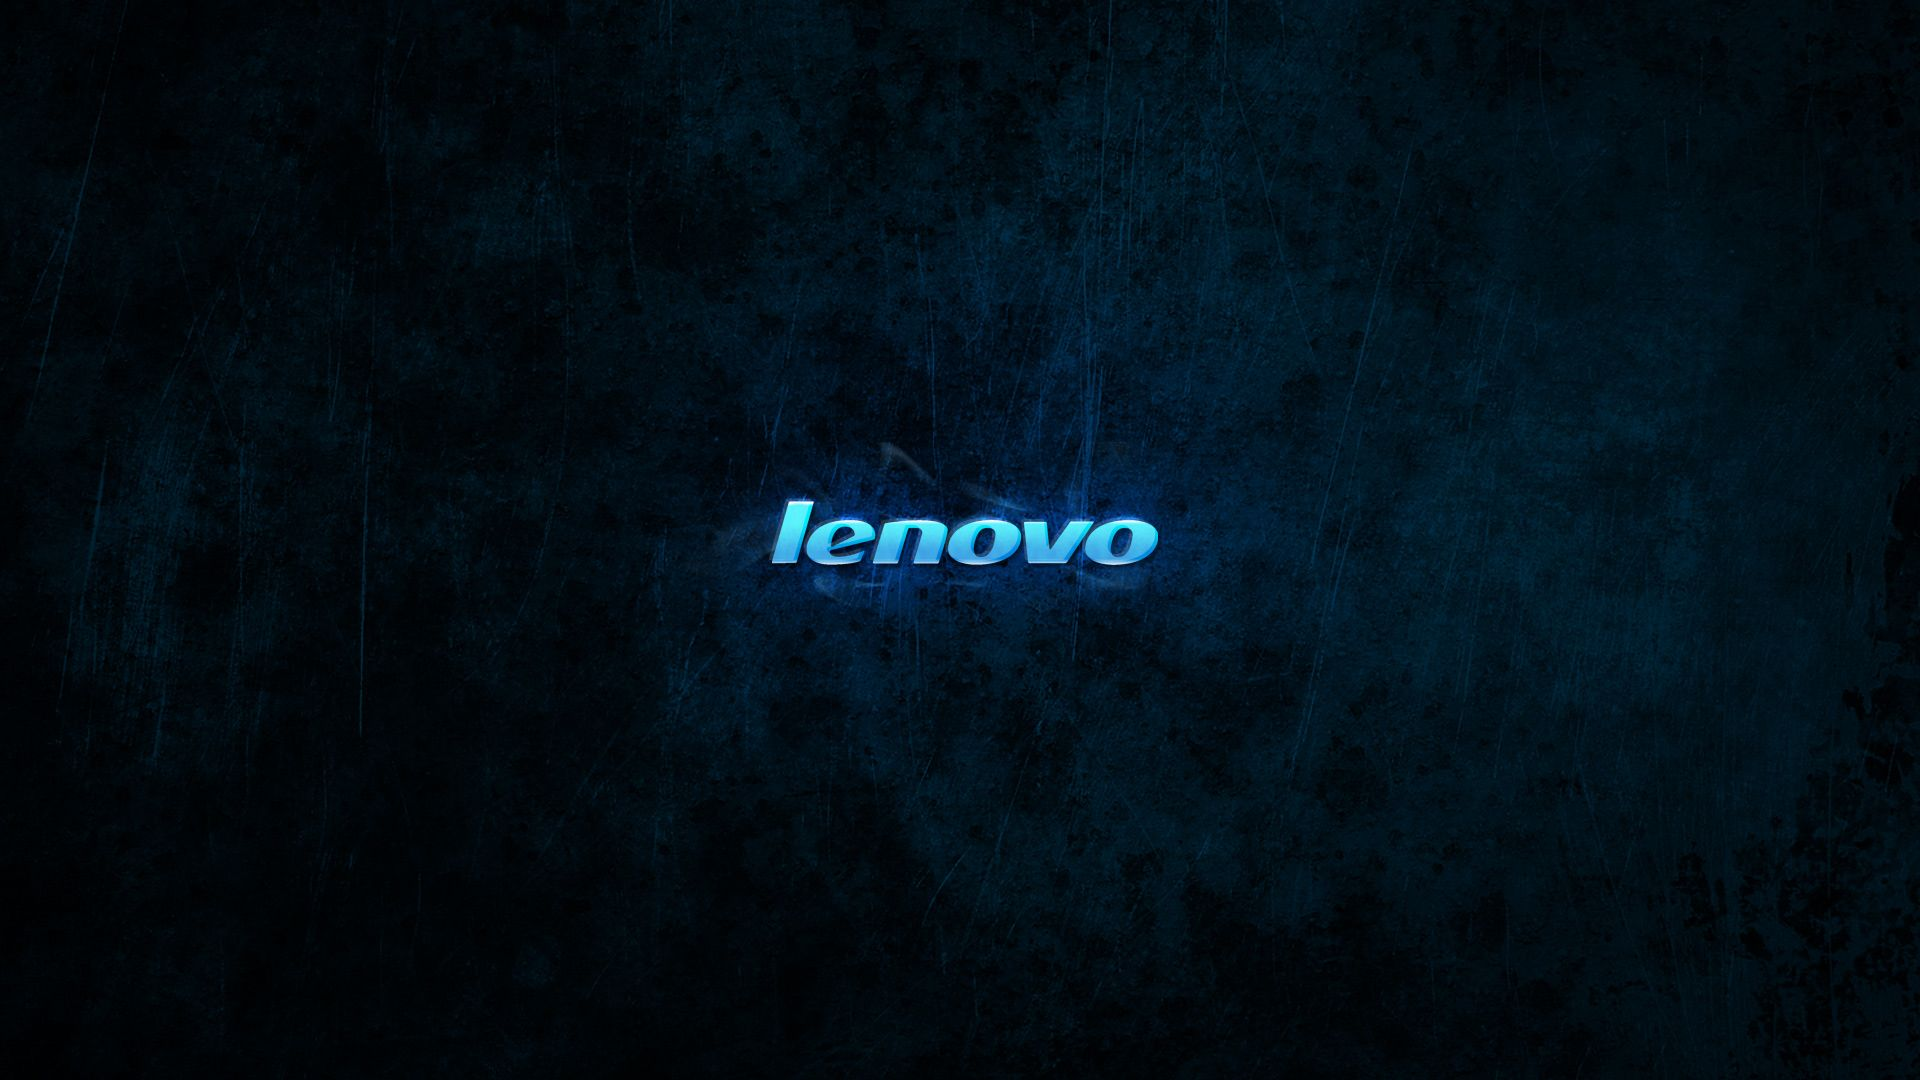 Lenovo Wallpaper Theme 1024×768 Lenovo Windows 7 Wallpapers (39 Wallpapers) | Adorable Wallpapers